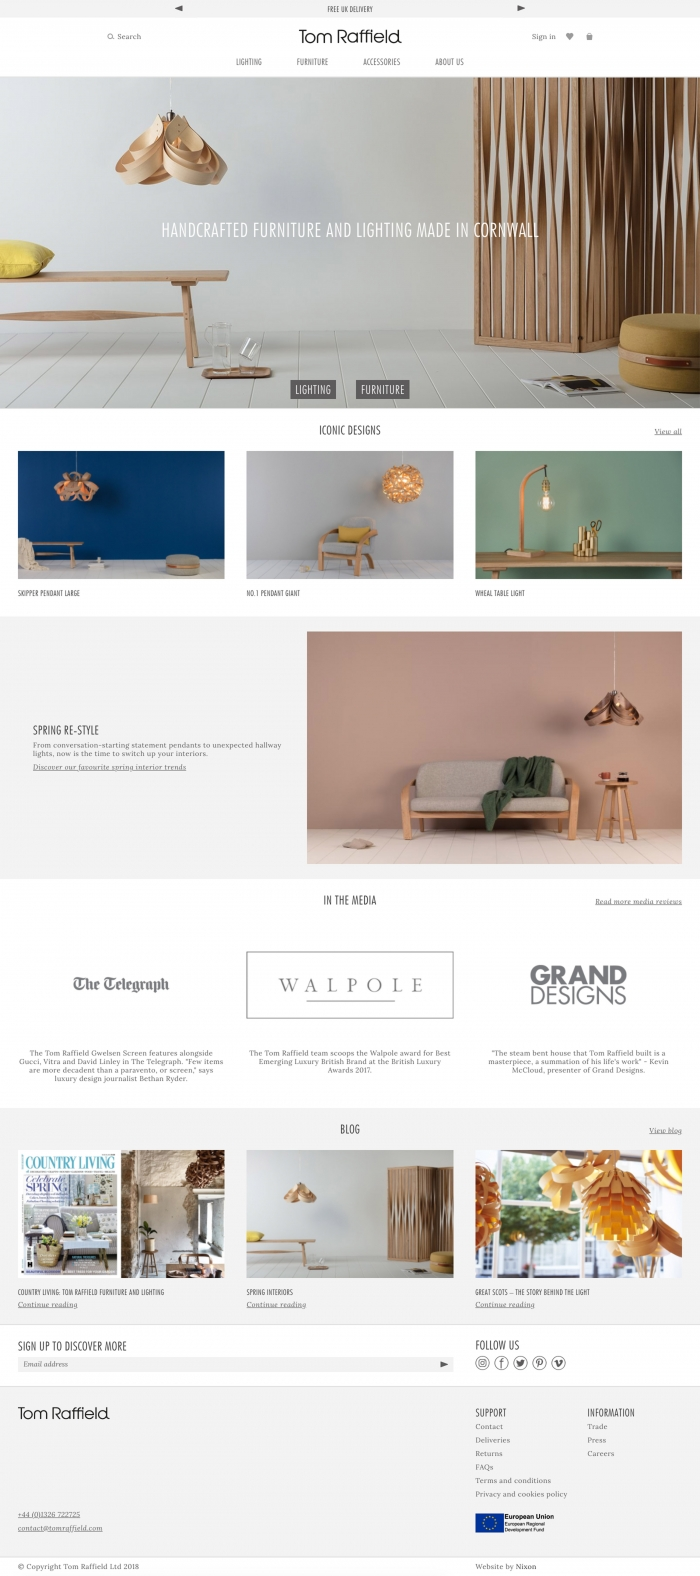 The Tom Raffield website homepage by Nixon Design.